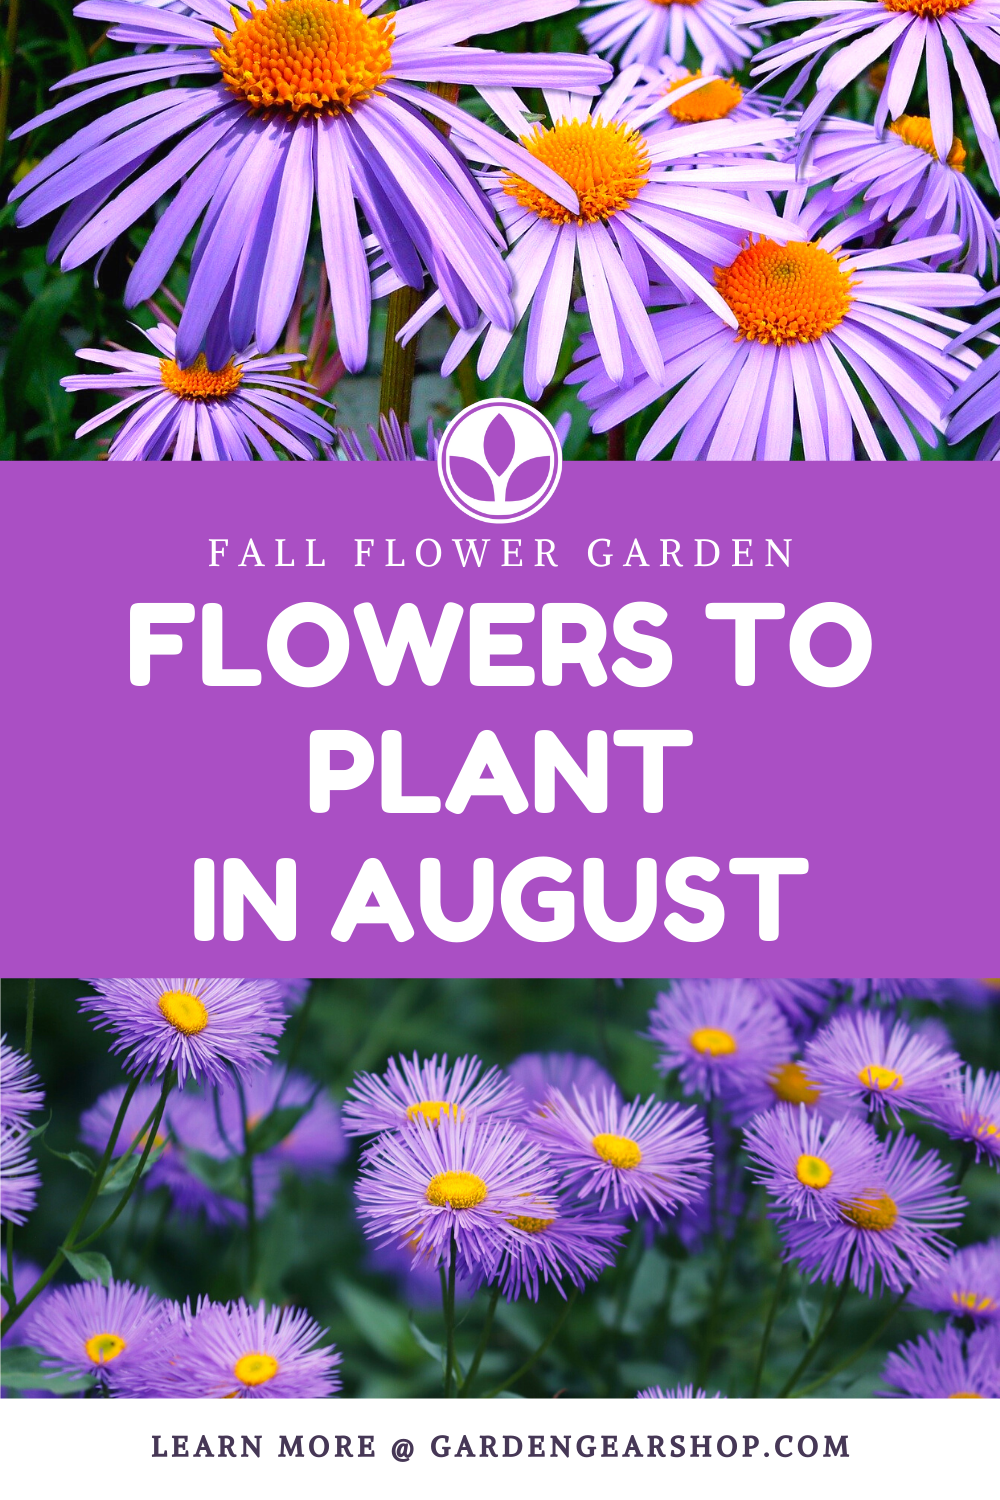 Flowers To Plant In August In 2020 Planting Flowers Plants Fall Flowers Garden